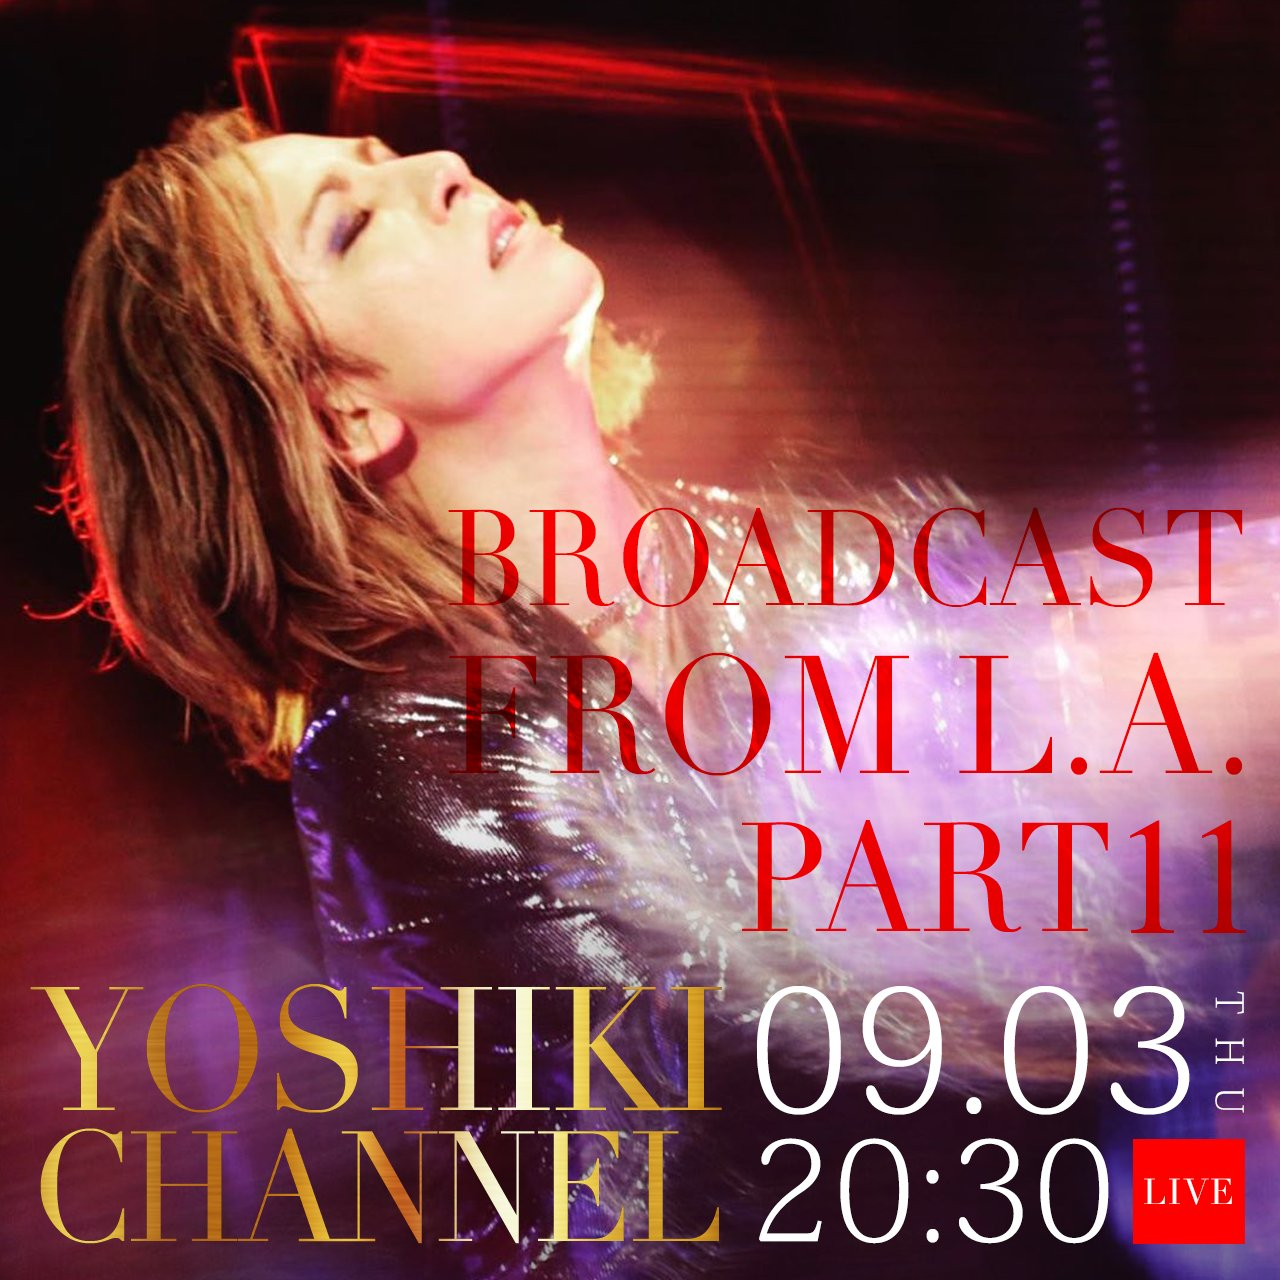 Part 11 of the YOSHIKI CHANNEL Live Concert Series to Stream on YouTube